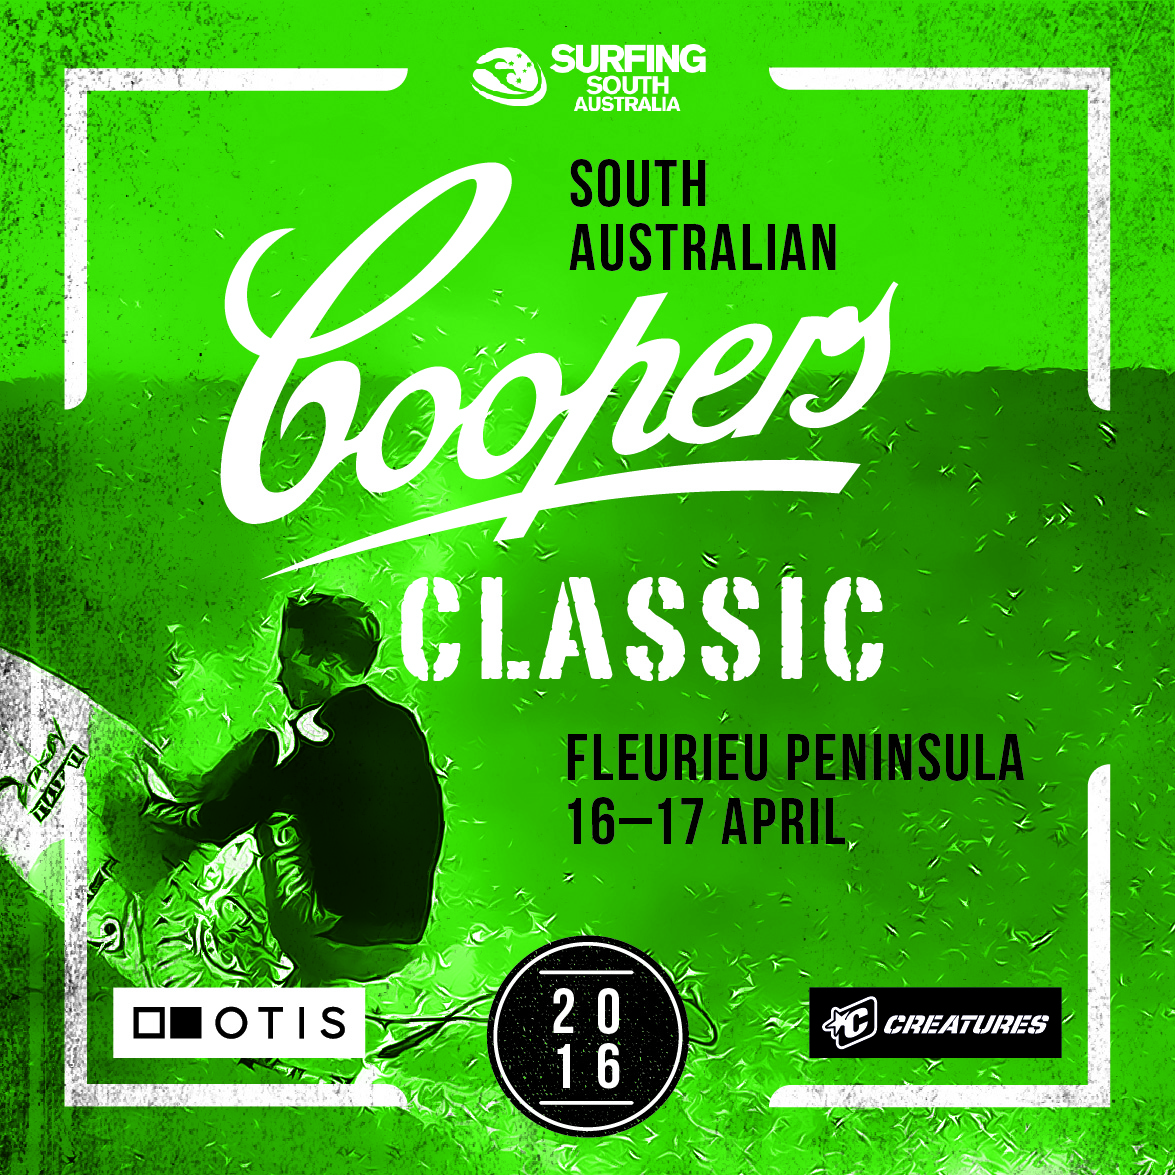 coopers_classic